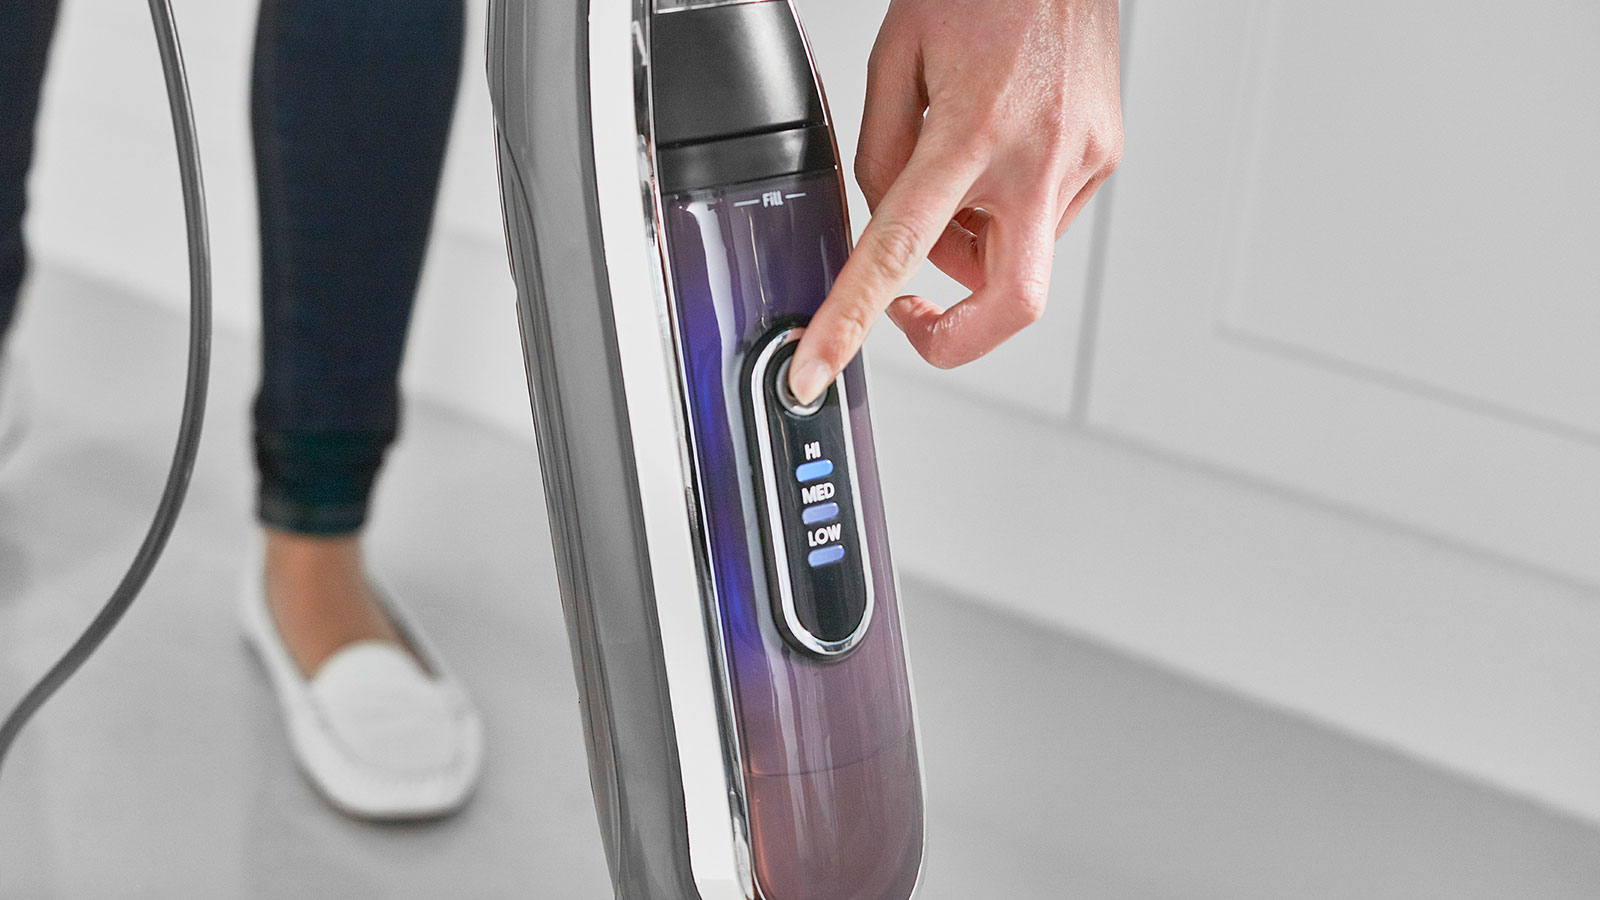 Shark Klik N Flip Automatic Steam Mop S6003uk Shark